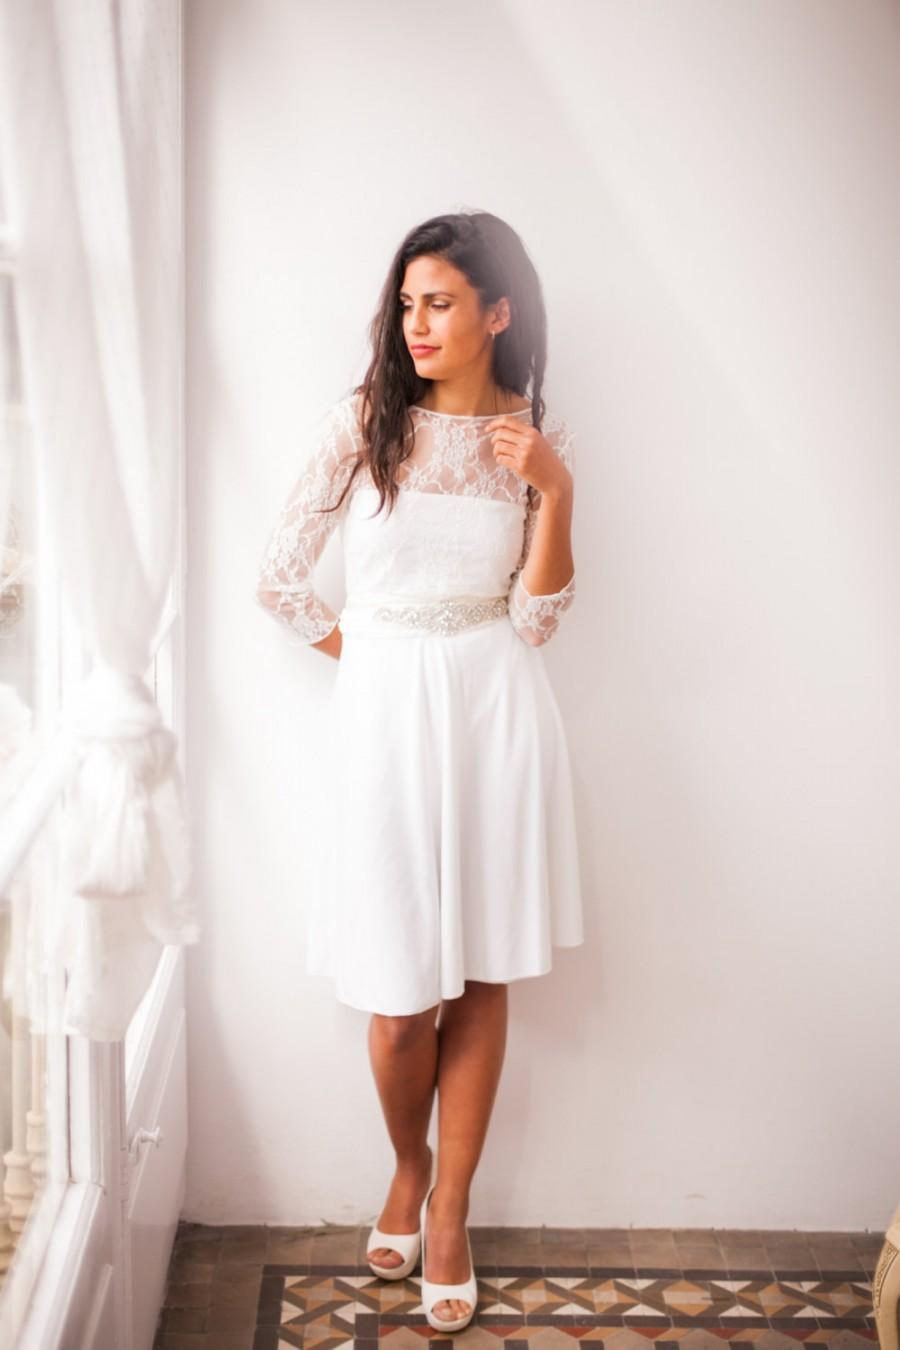 Short wedding dress with sleeves lace wedding reception dress short wedding dress with sleeves lace wedding reception dress white dress long sleeve lace wedding dress versatile dress junglespirit Choice Image